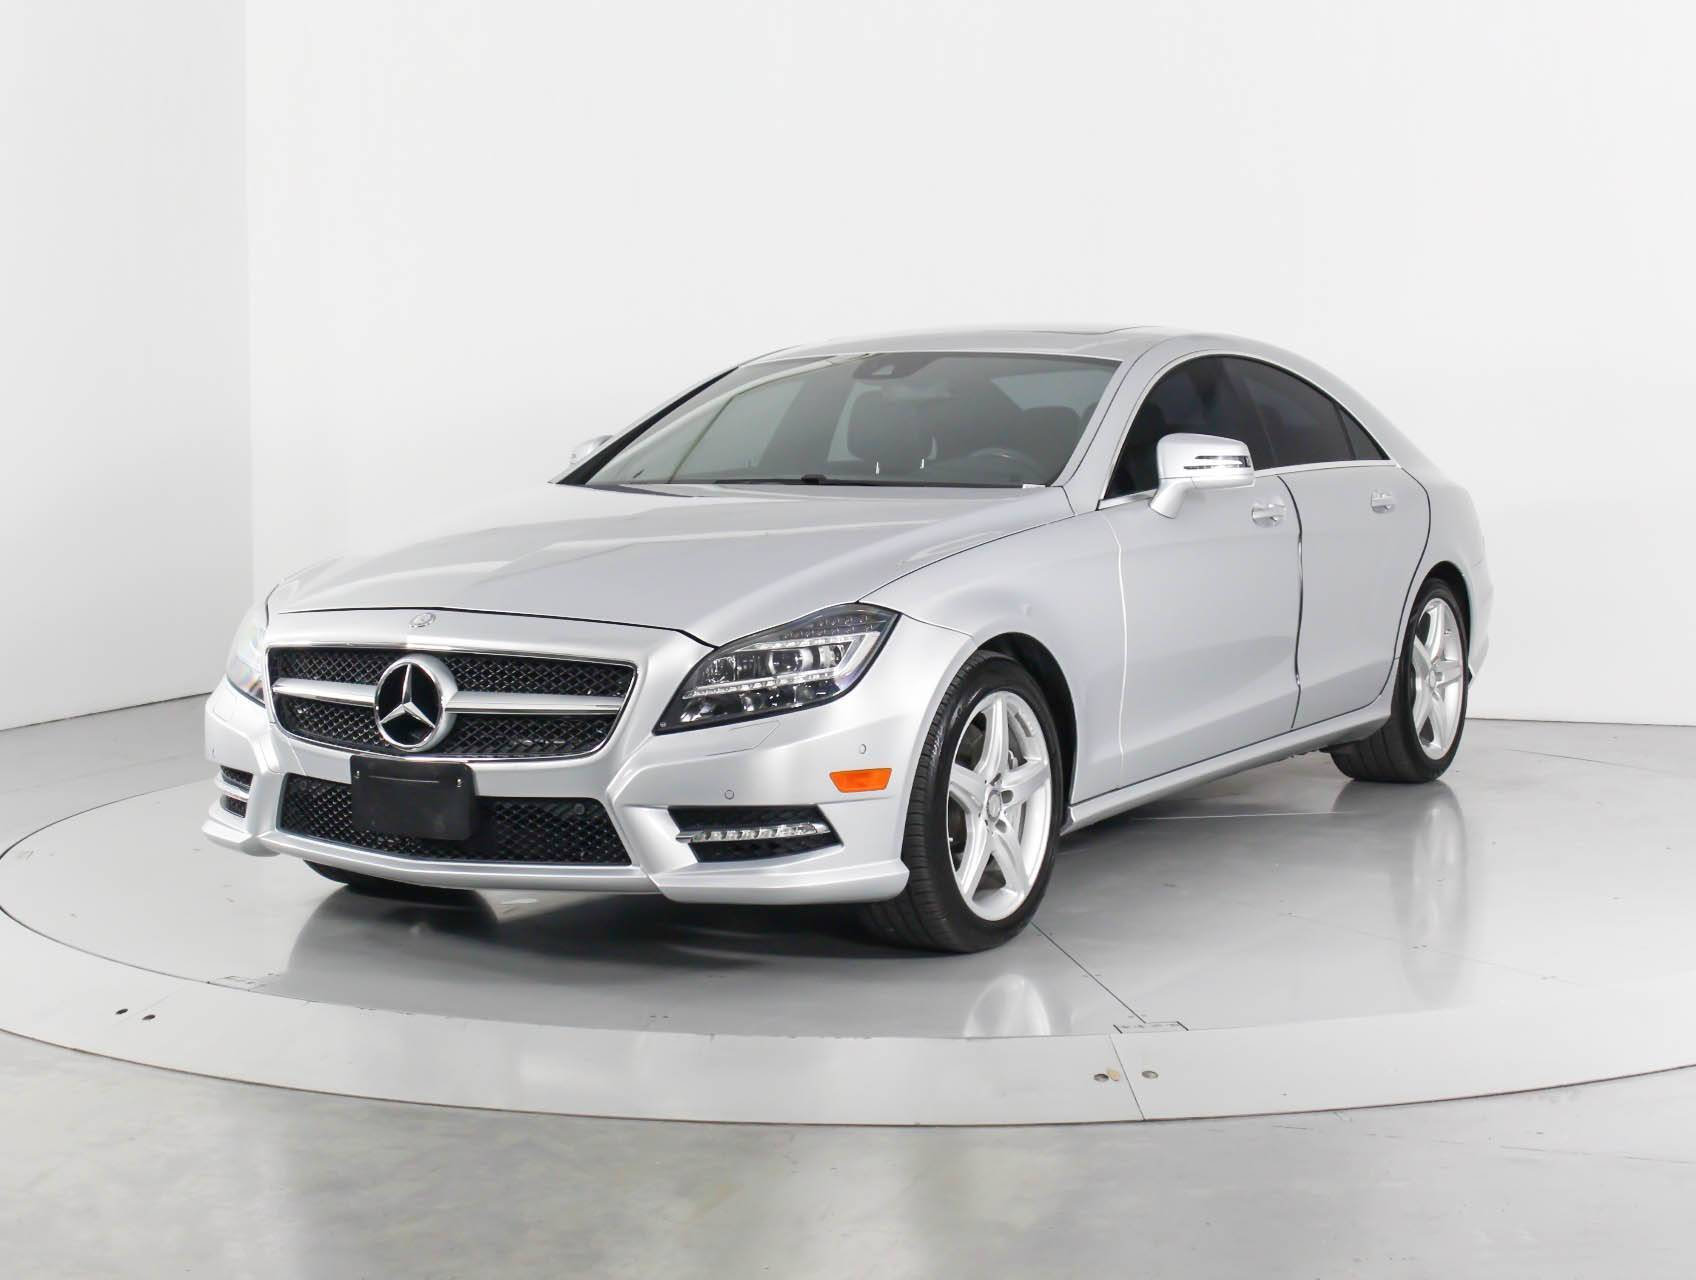 Used 2014 MERCEDES-BENZ CLS CLASS CLS550 4MATIC Sedan for sale in